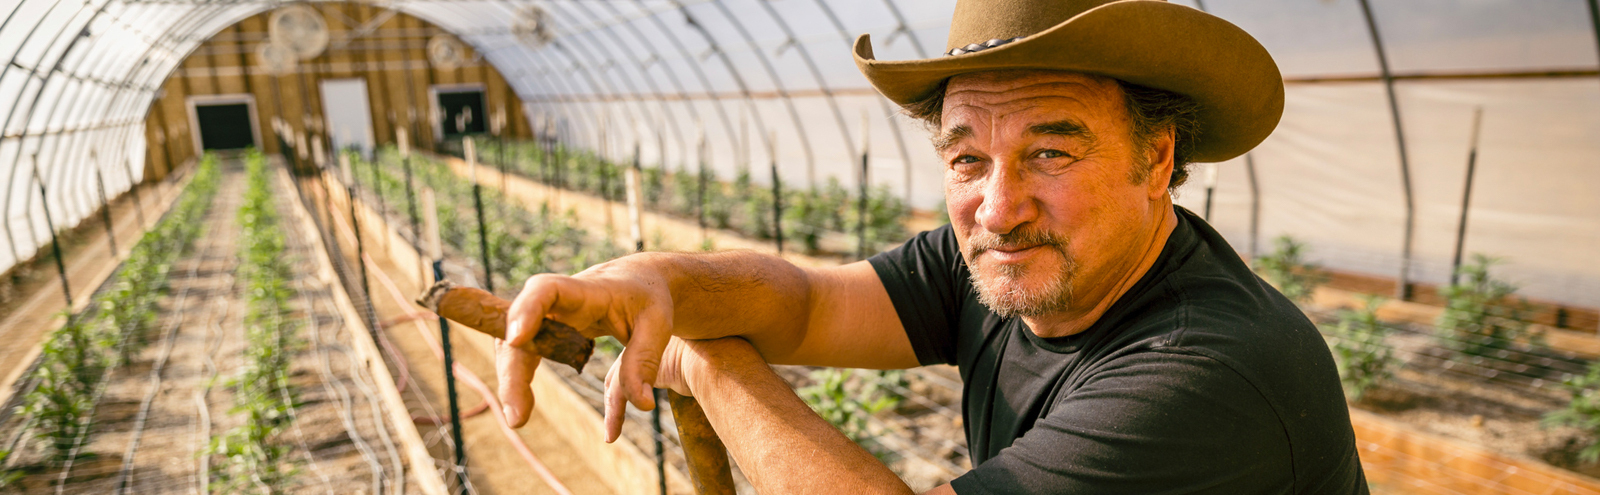 Jim Belushi On His Cannabis Show 'Growing Belushi,' His Favorite Strains, And The 'Smell Of SNL'